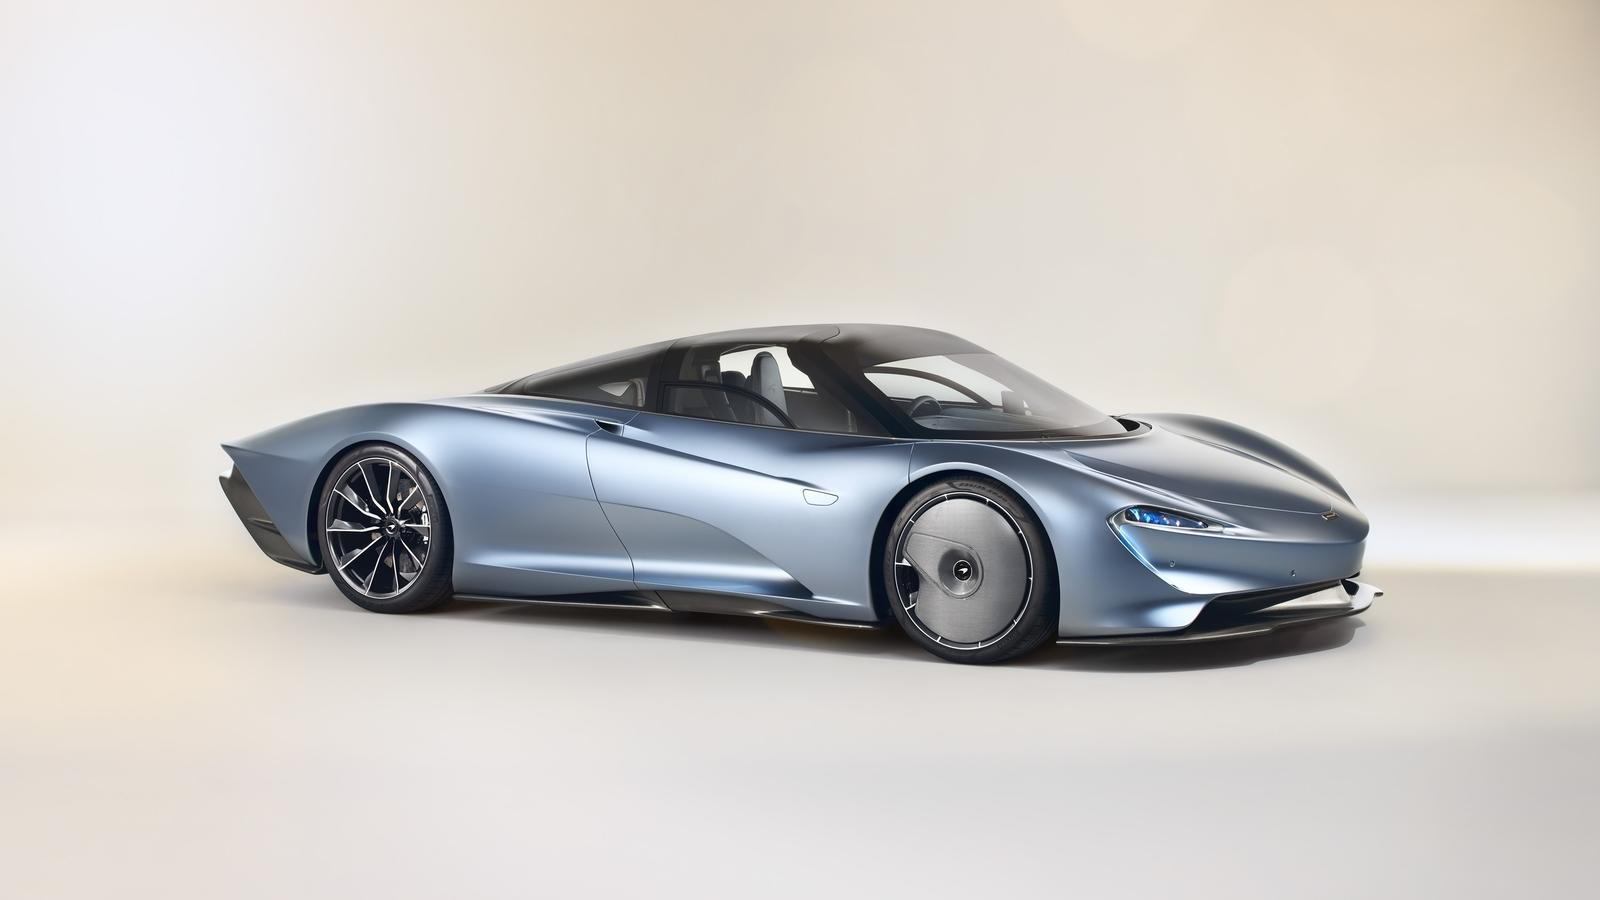 the mclaren speedtail sets a new company standard that